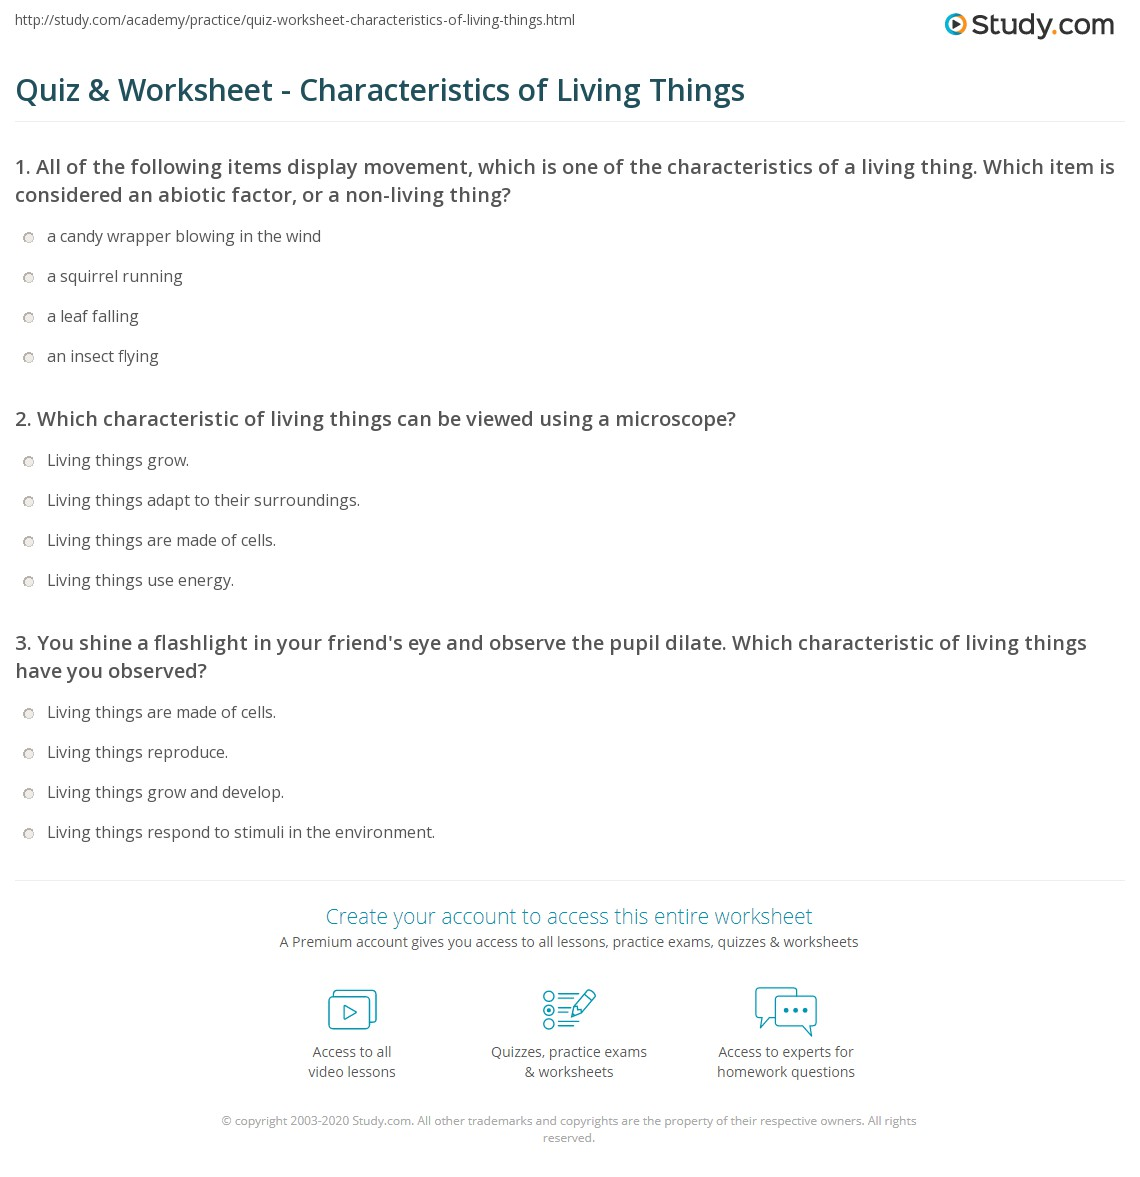 Quiz & Worksheet Characteristics of Living Things